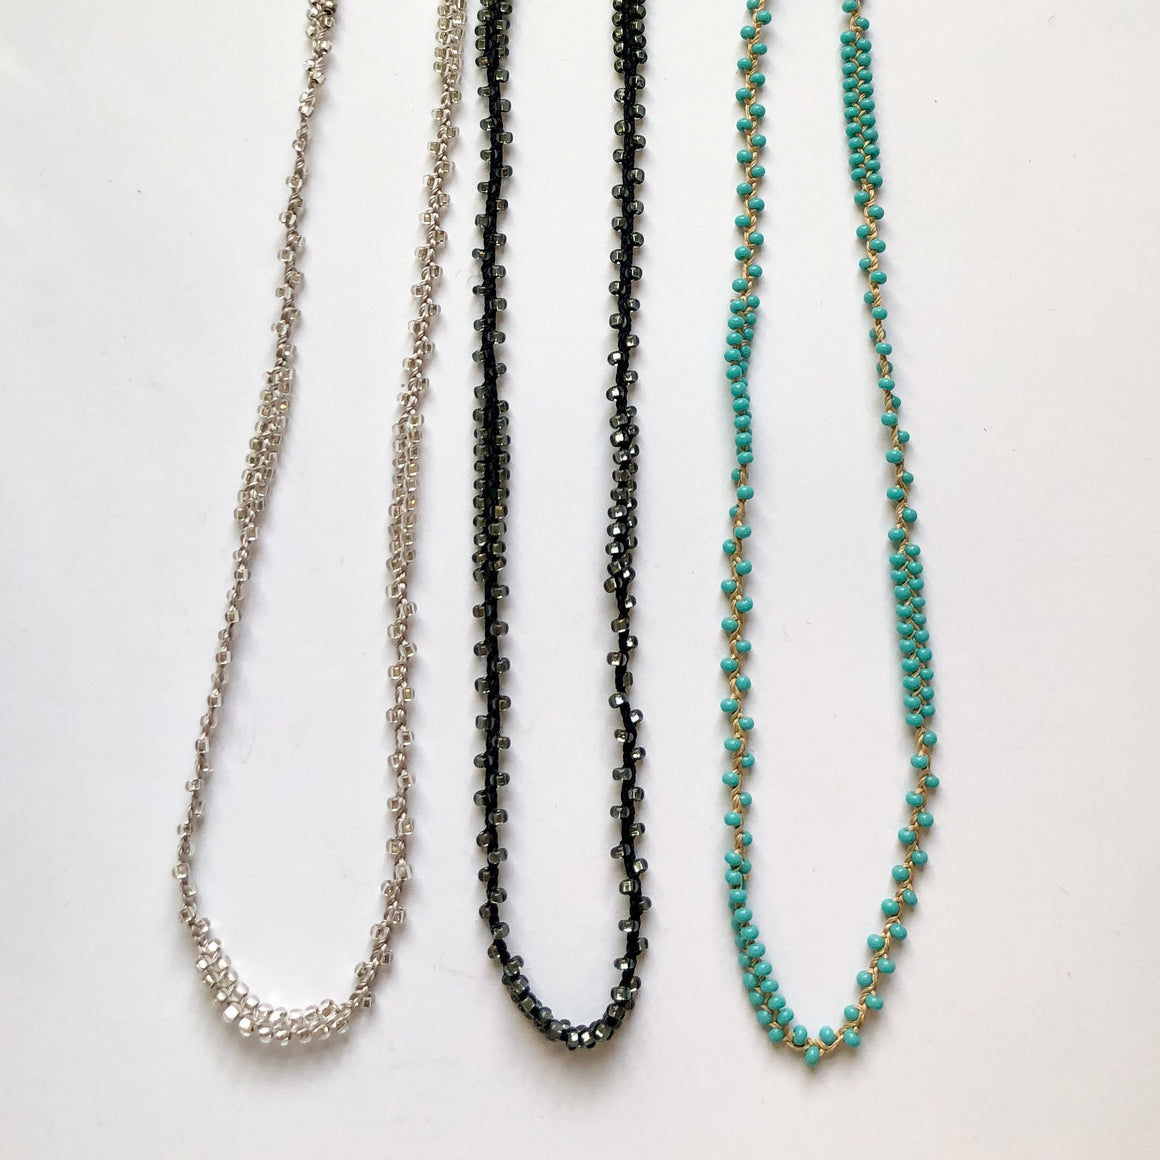 "Braided 32"" Patterned Beaded Necklaces Silver, Turquoise, & Black"